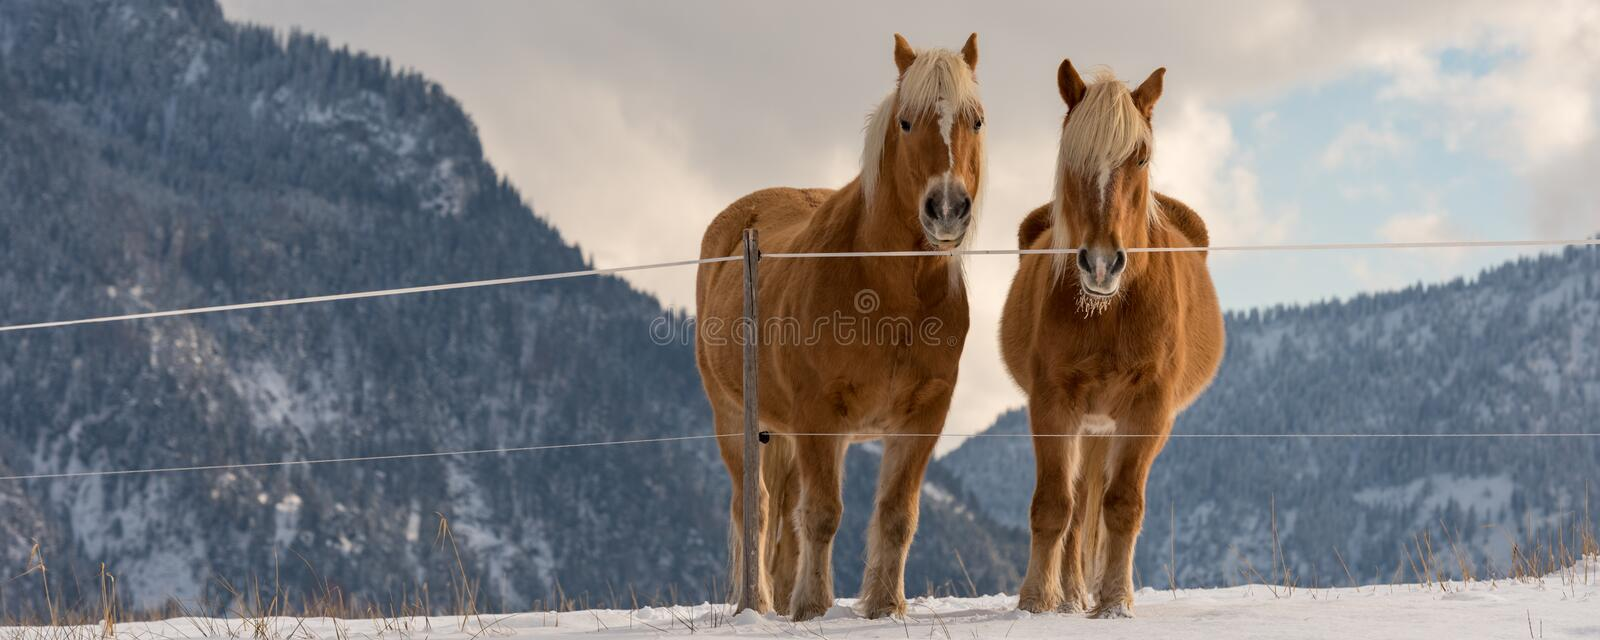 Two Haflinger horses on the winter meadow and mountain peaks on background royalty free stock photography